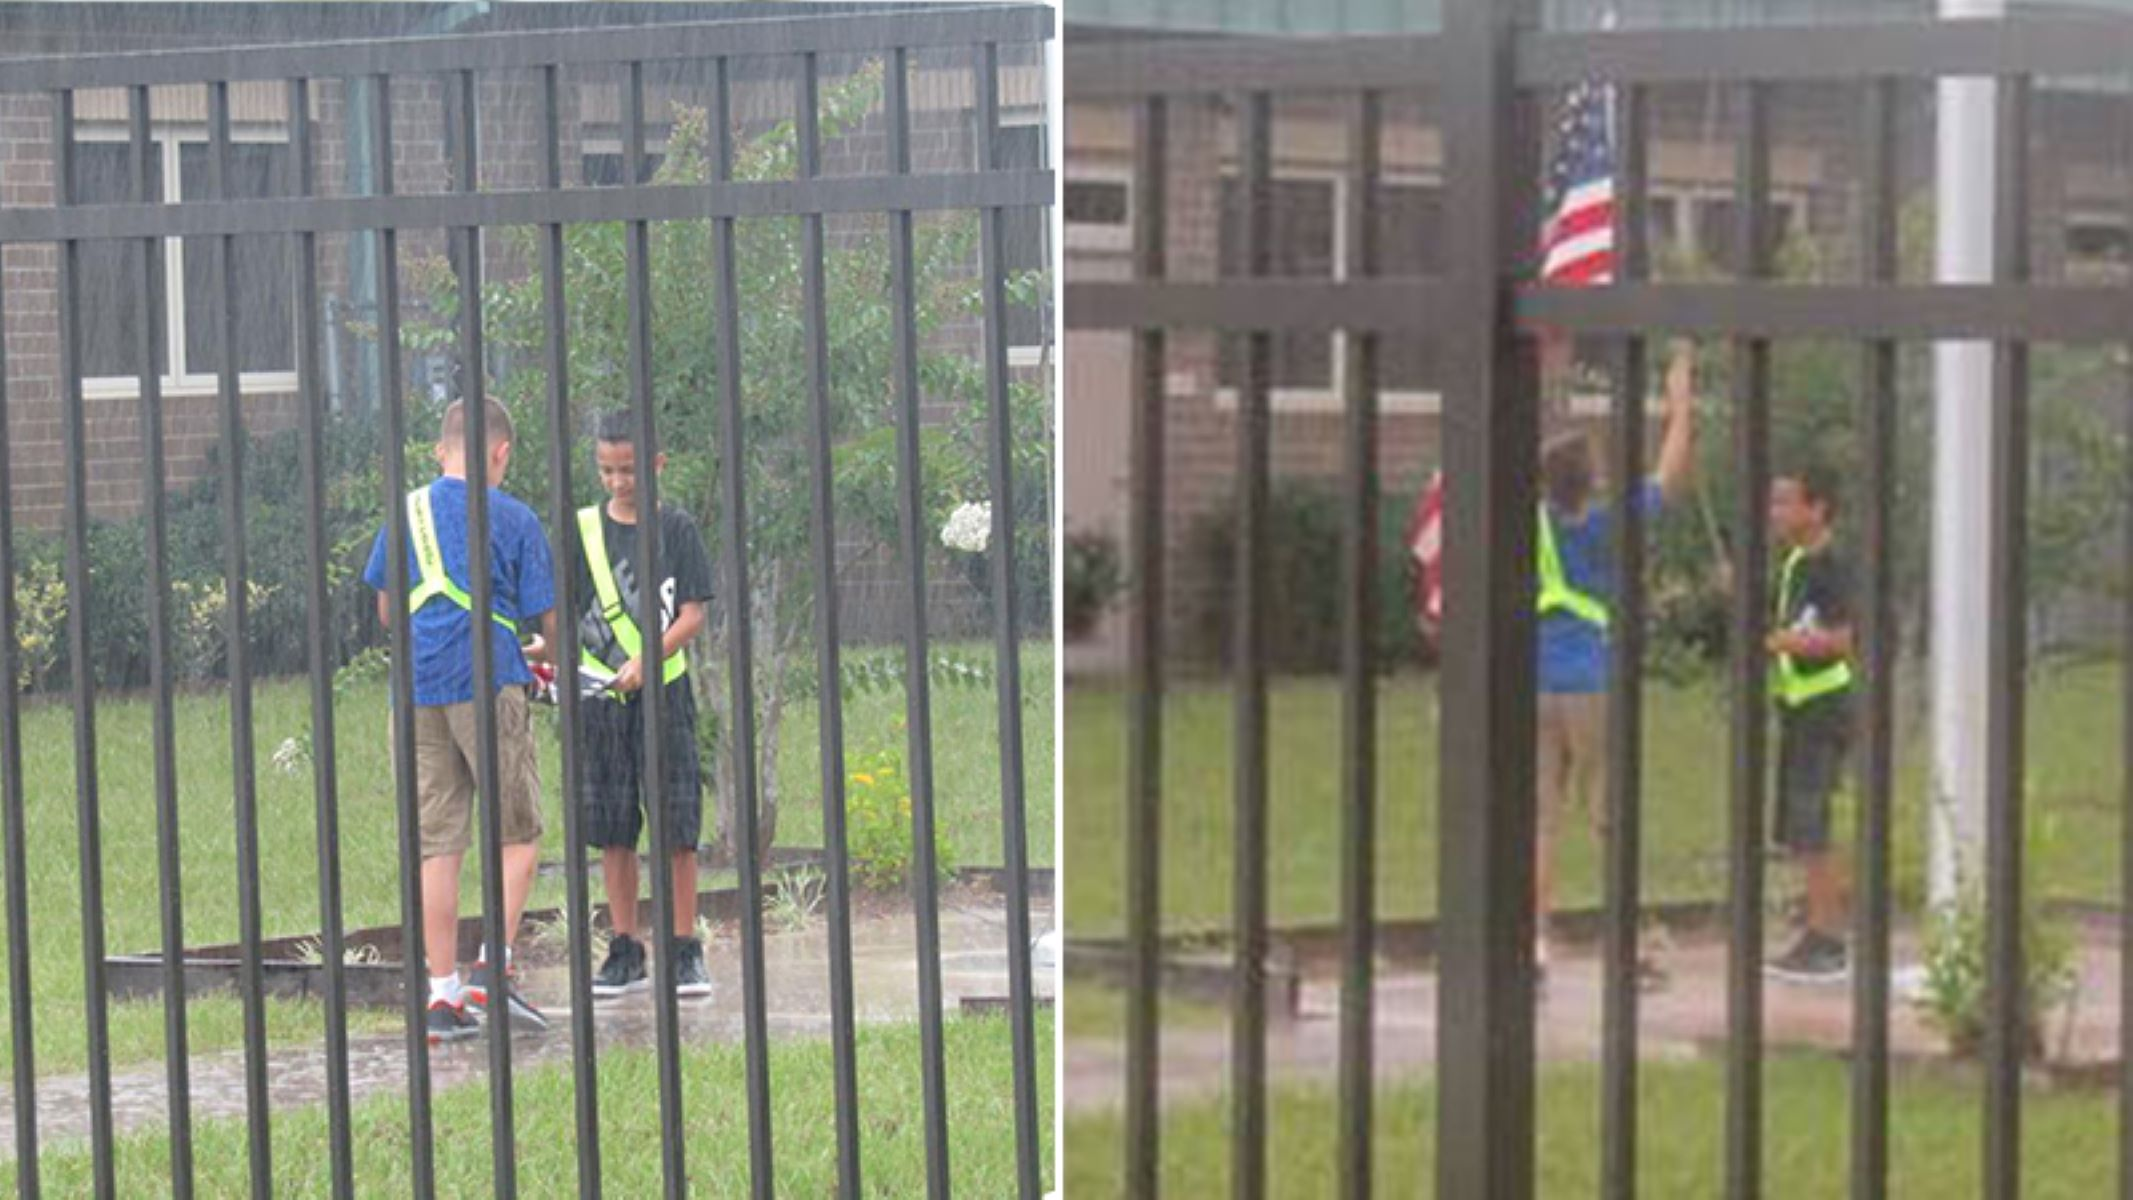 These Students Thought No One Saw Them in Pouring Rain. But Teacher Quietly Captured Their Whole Act